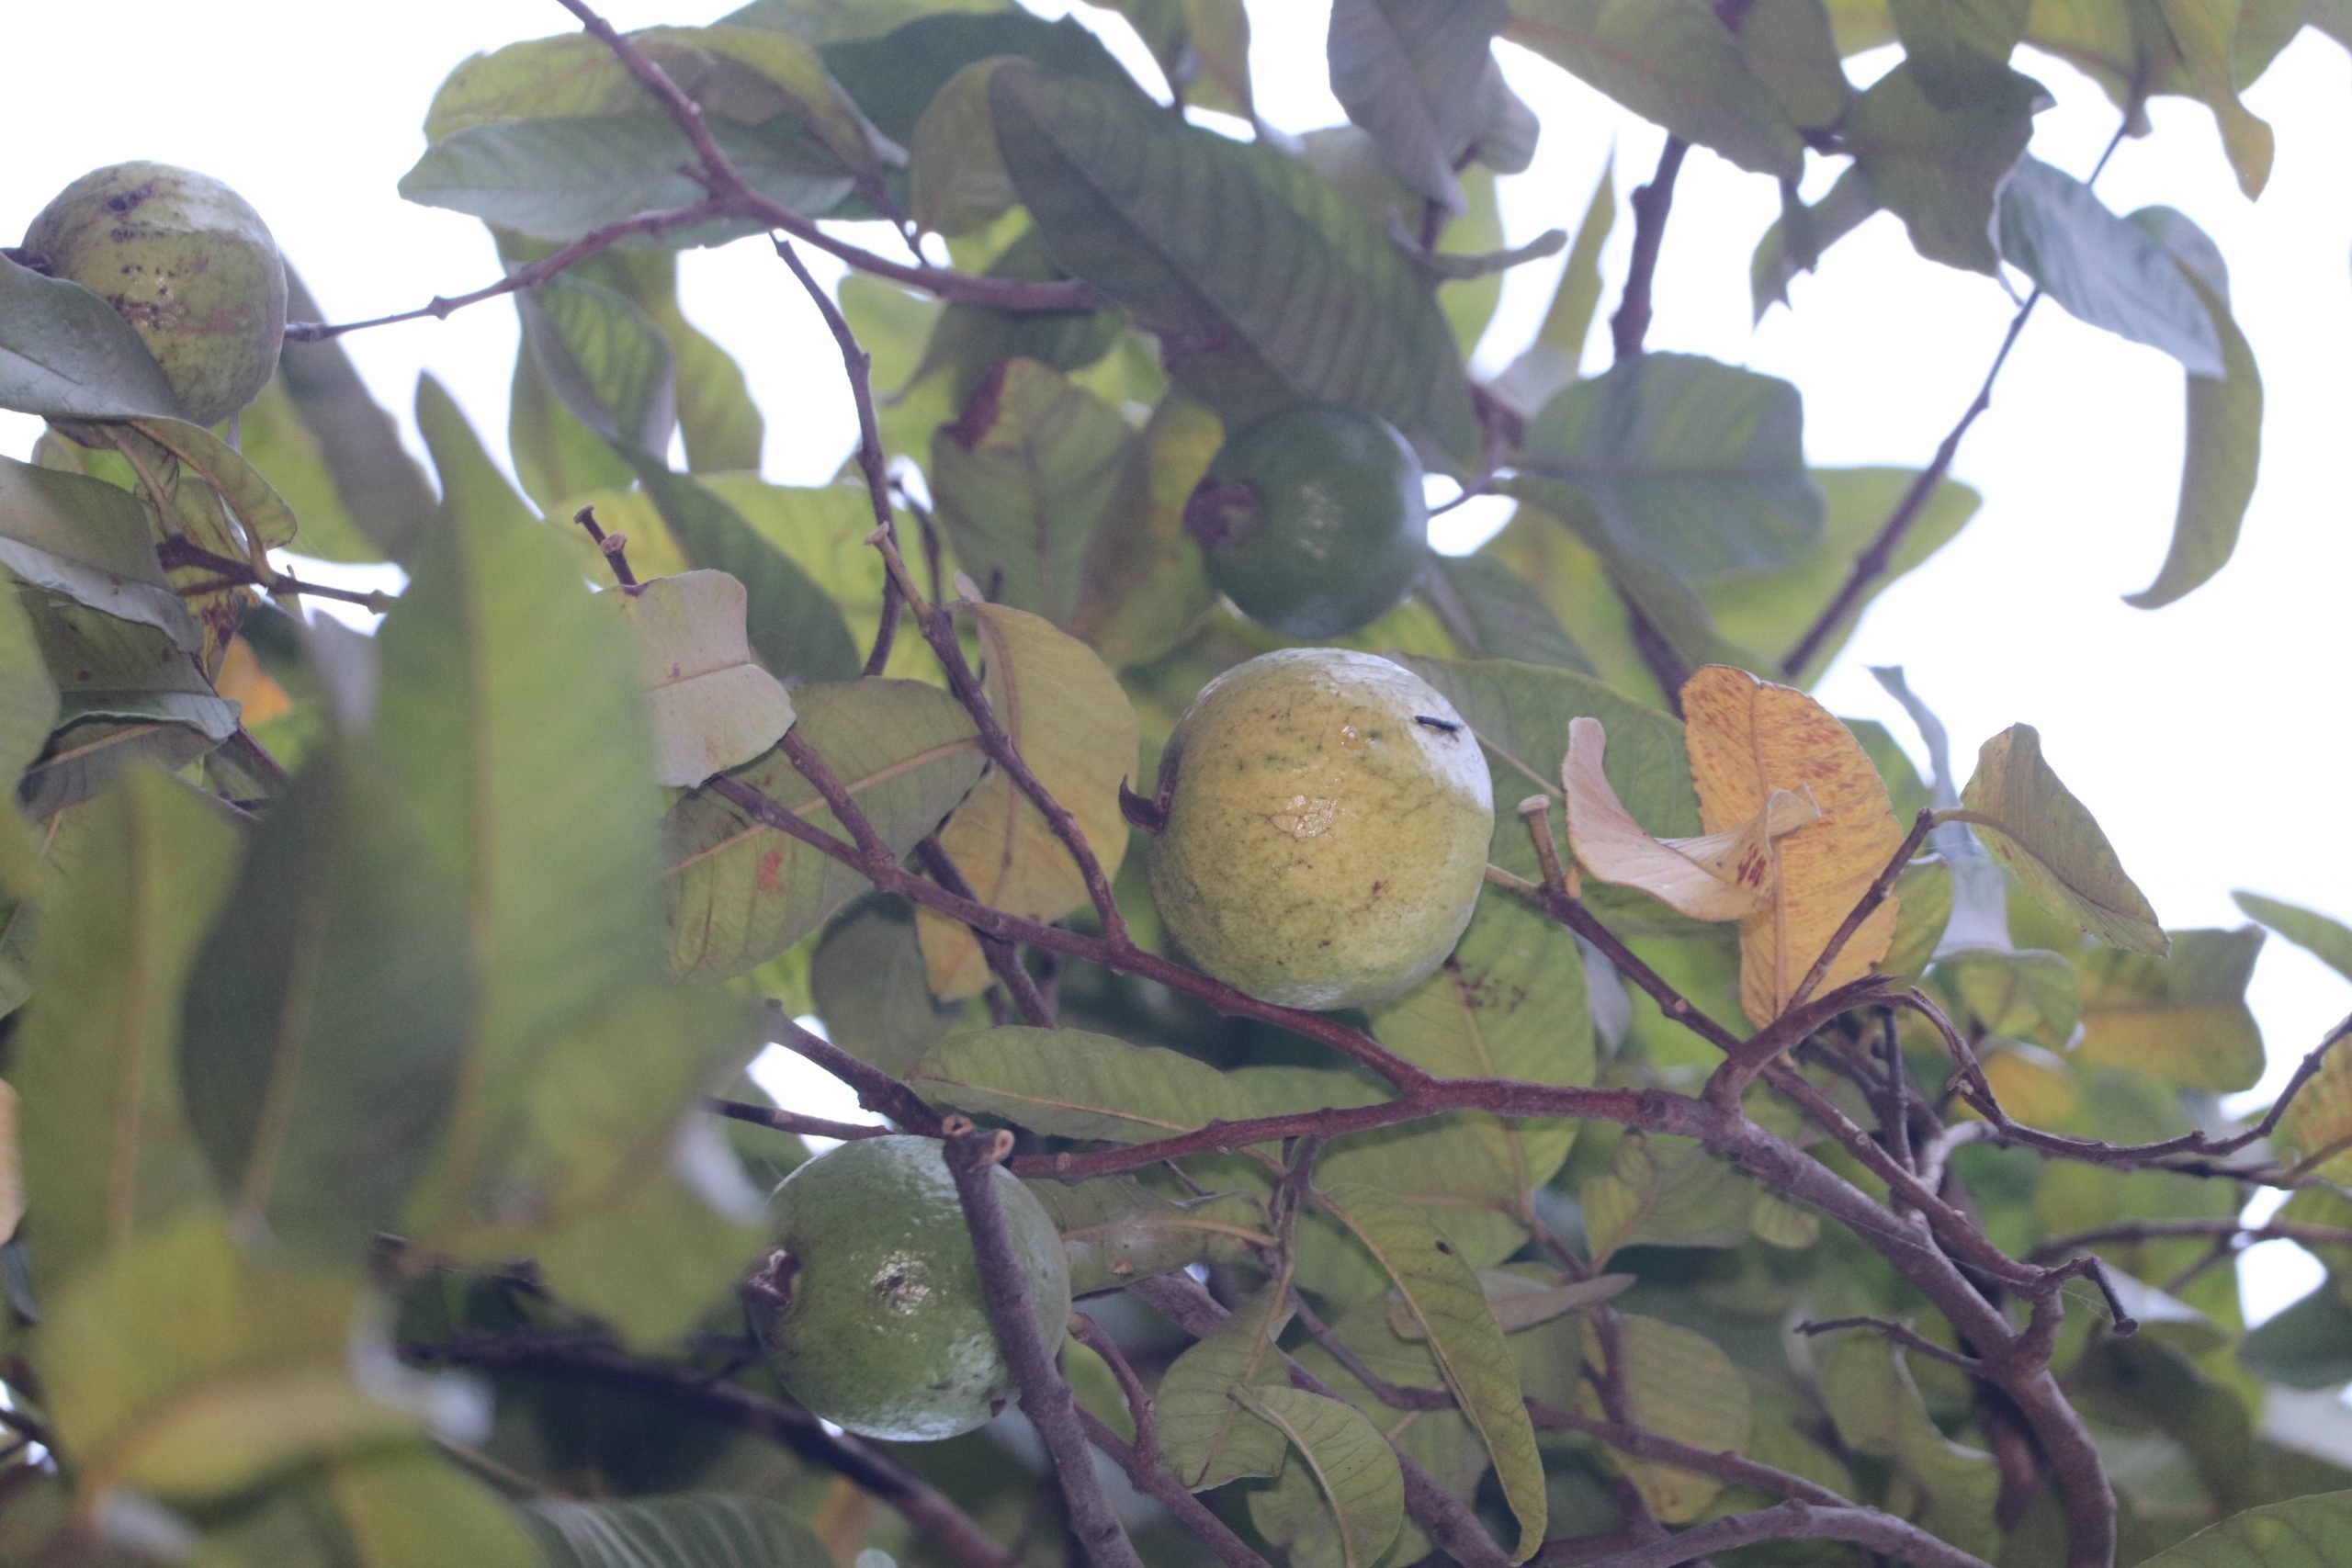 Guava on the tree